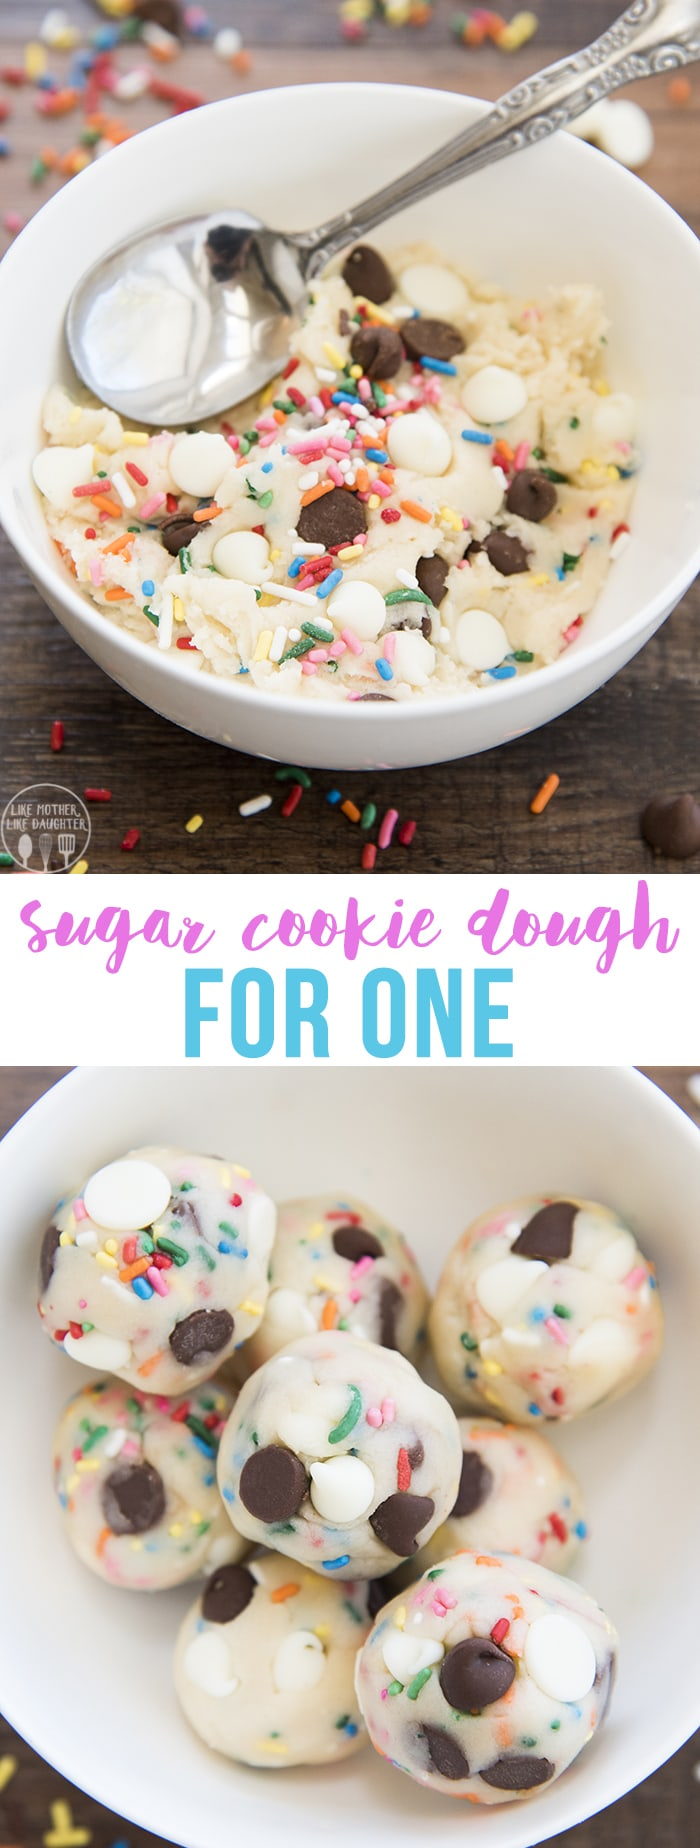 Edible Sugar Cookie Dough for one is a delicious egg free, safe, sugar cookie dough recipe that is stuffed full of sprinkles, chocolate chips, and white chocolate chips for a delicious funfetti treat!